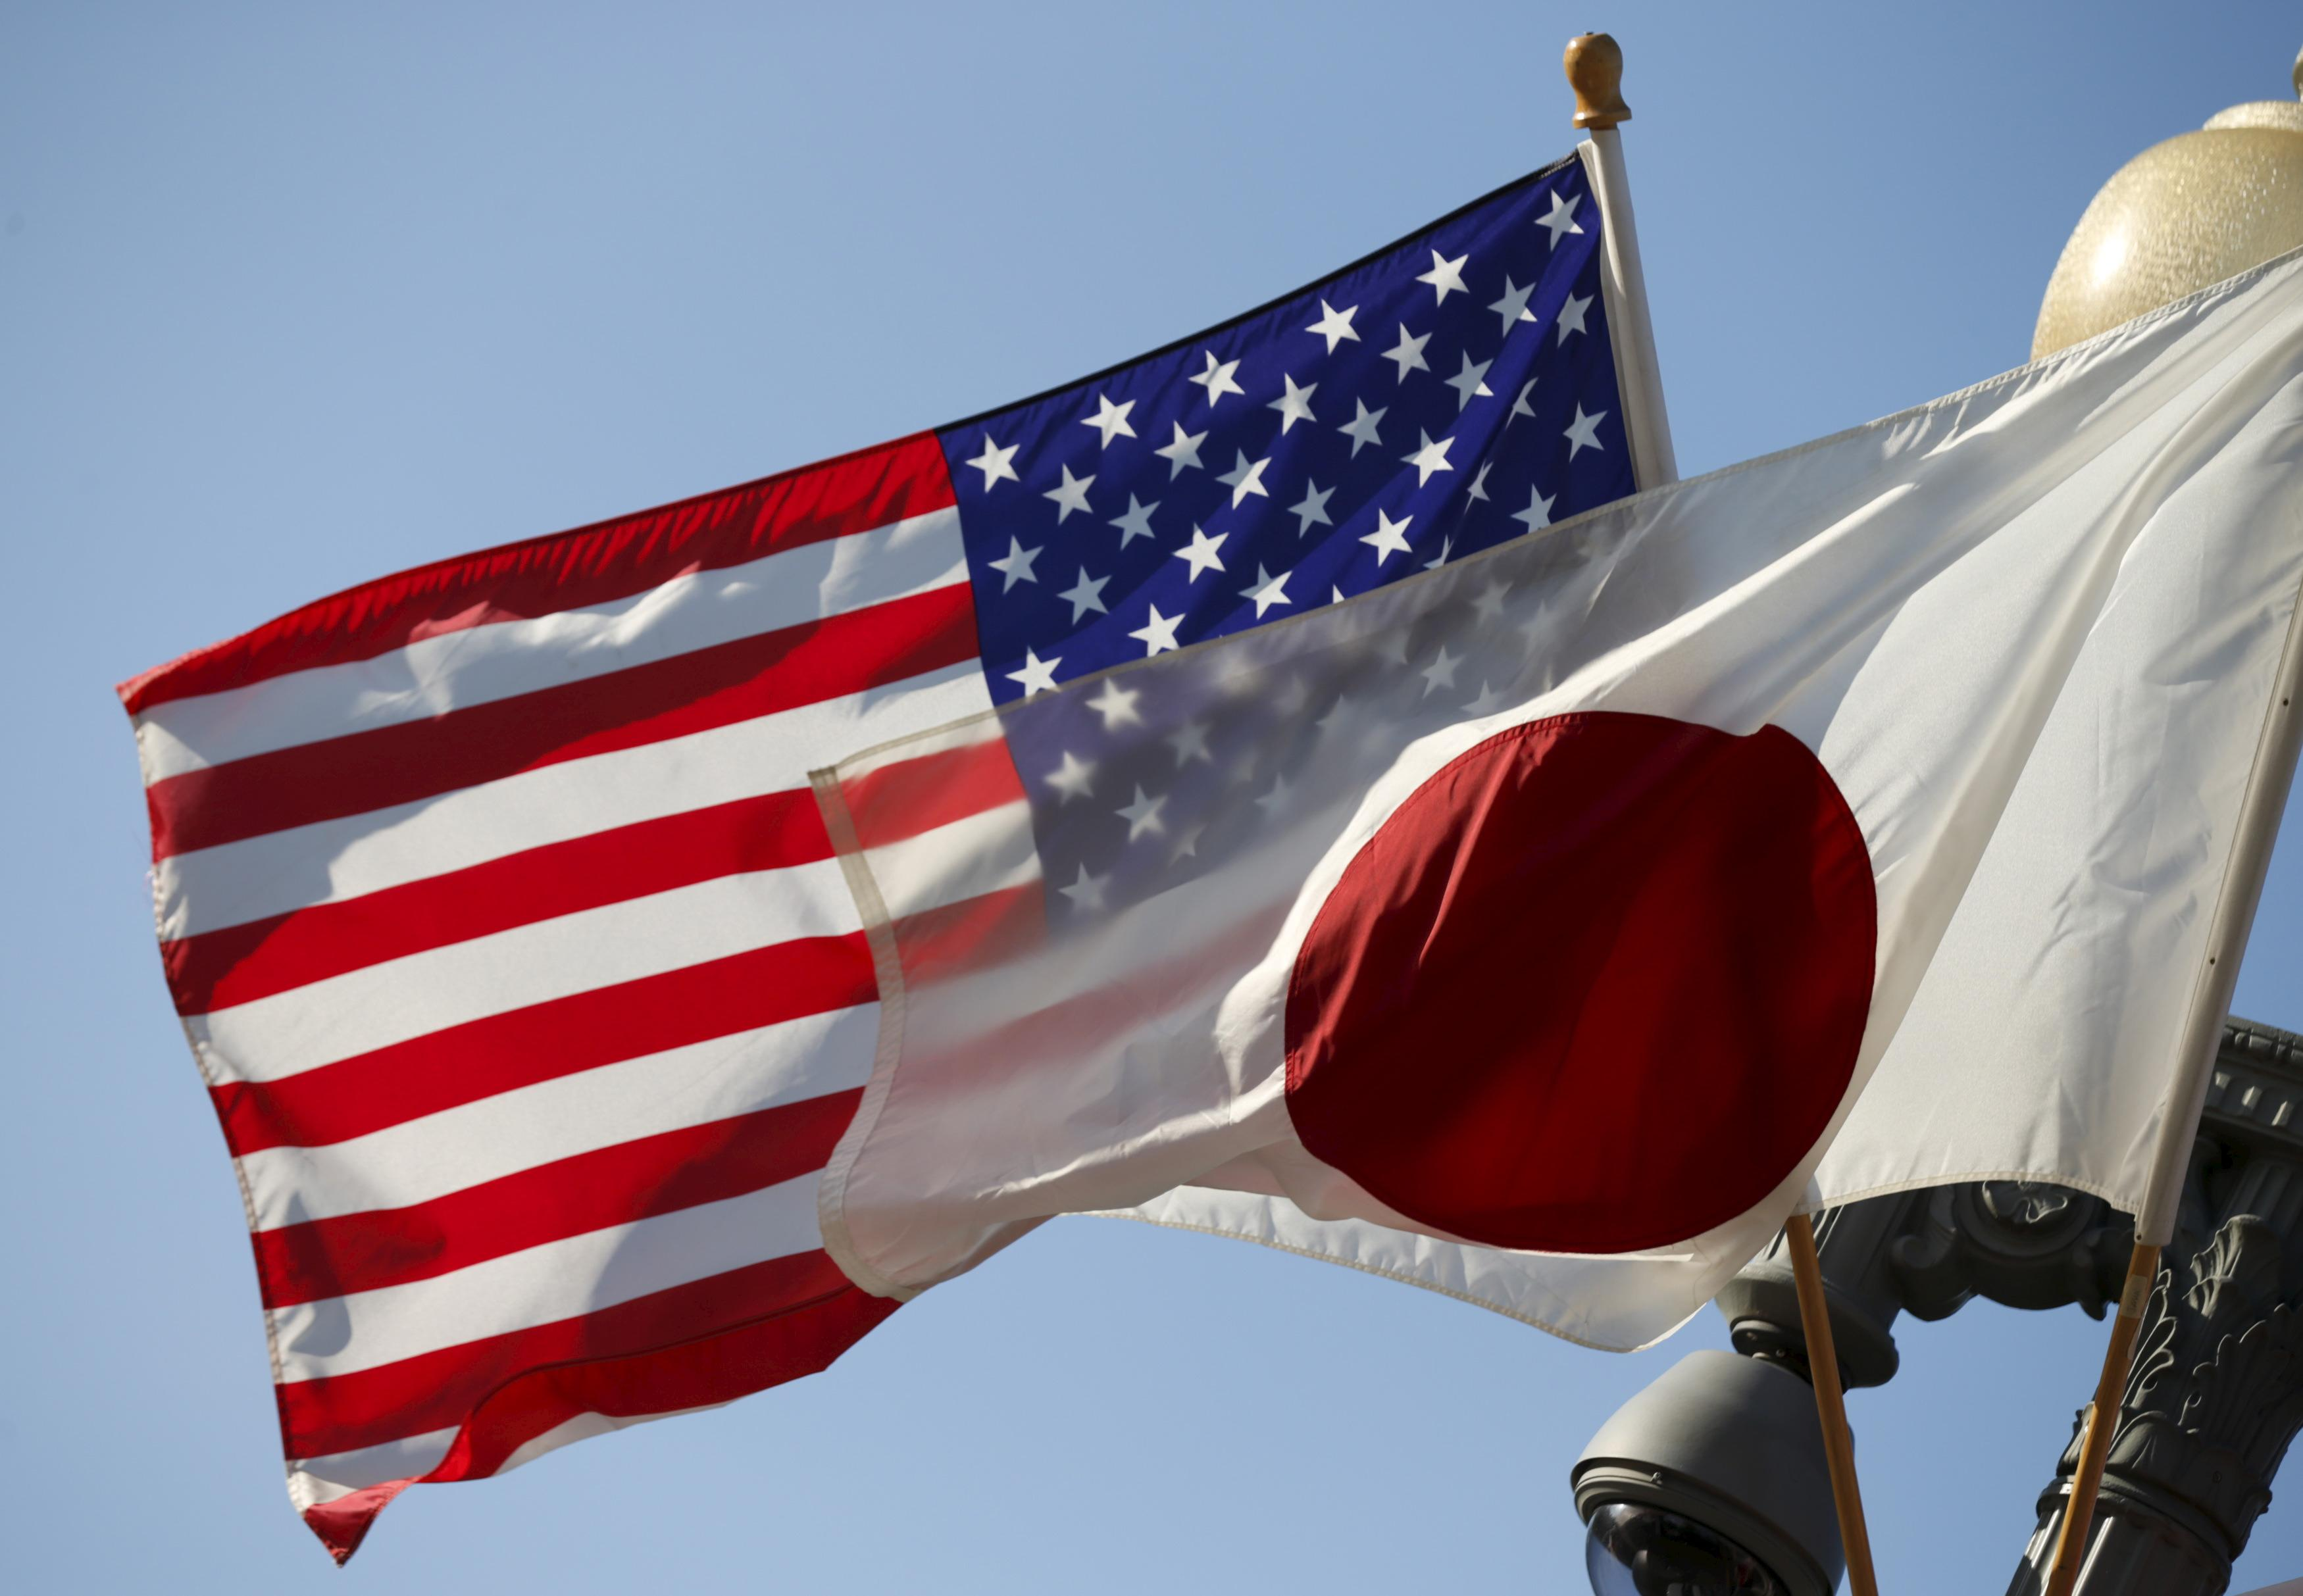 White House handling of U.S.-Japan trade deal angers Democrats